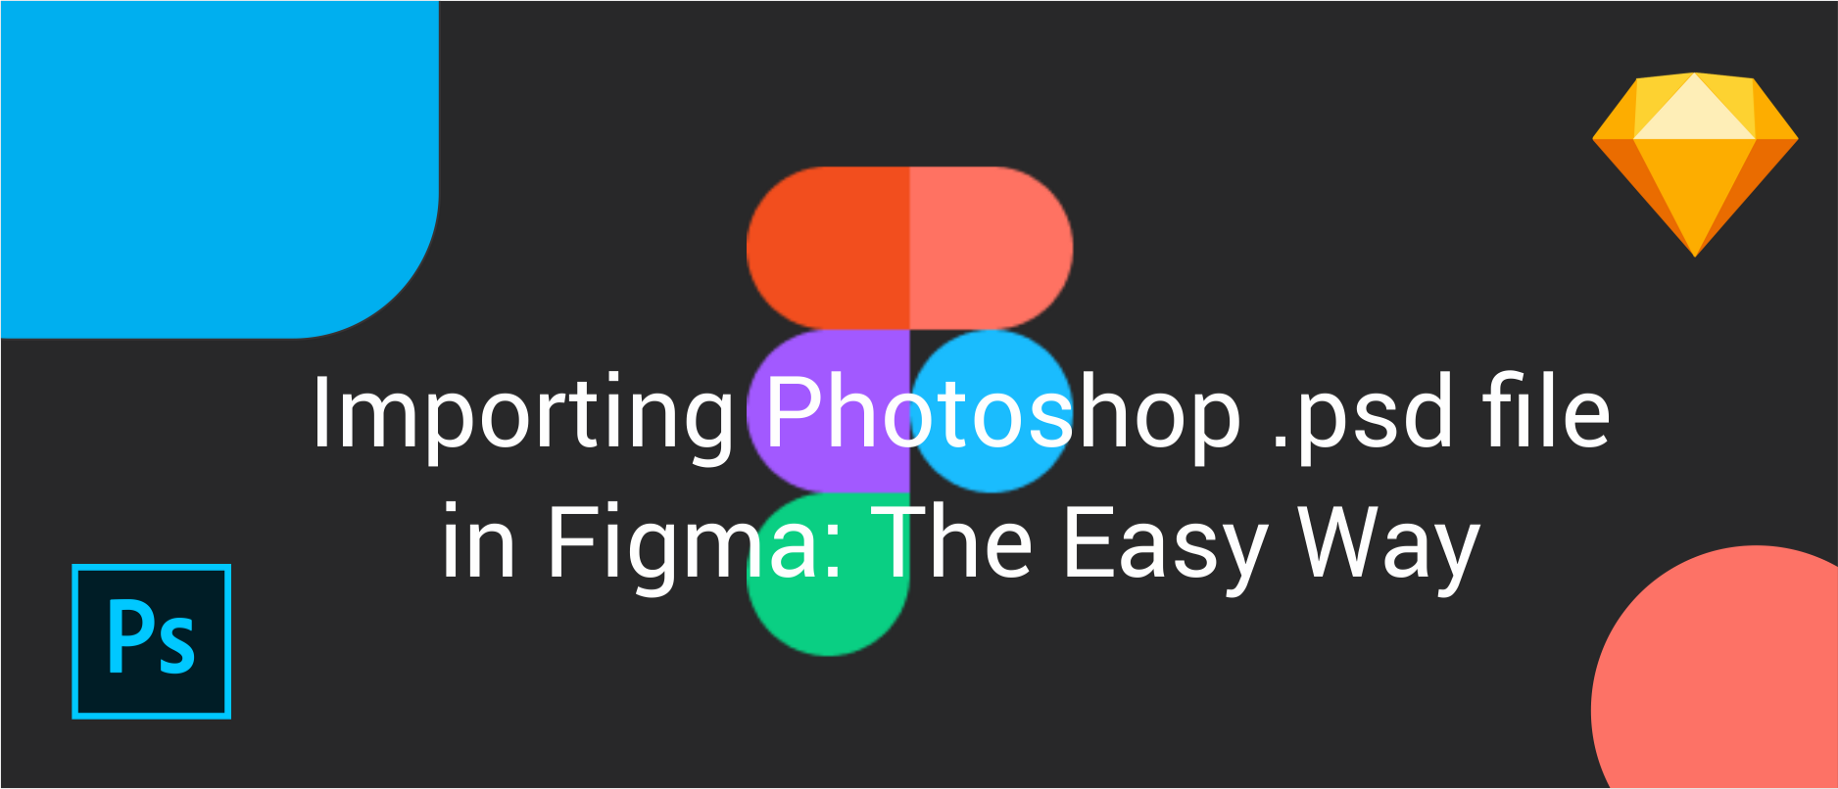 Importing Photoshop  psd file in Figma: The Easy Way